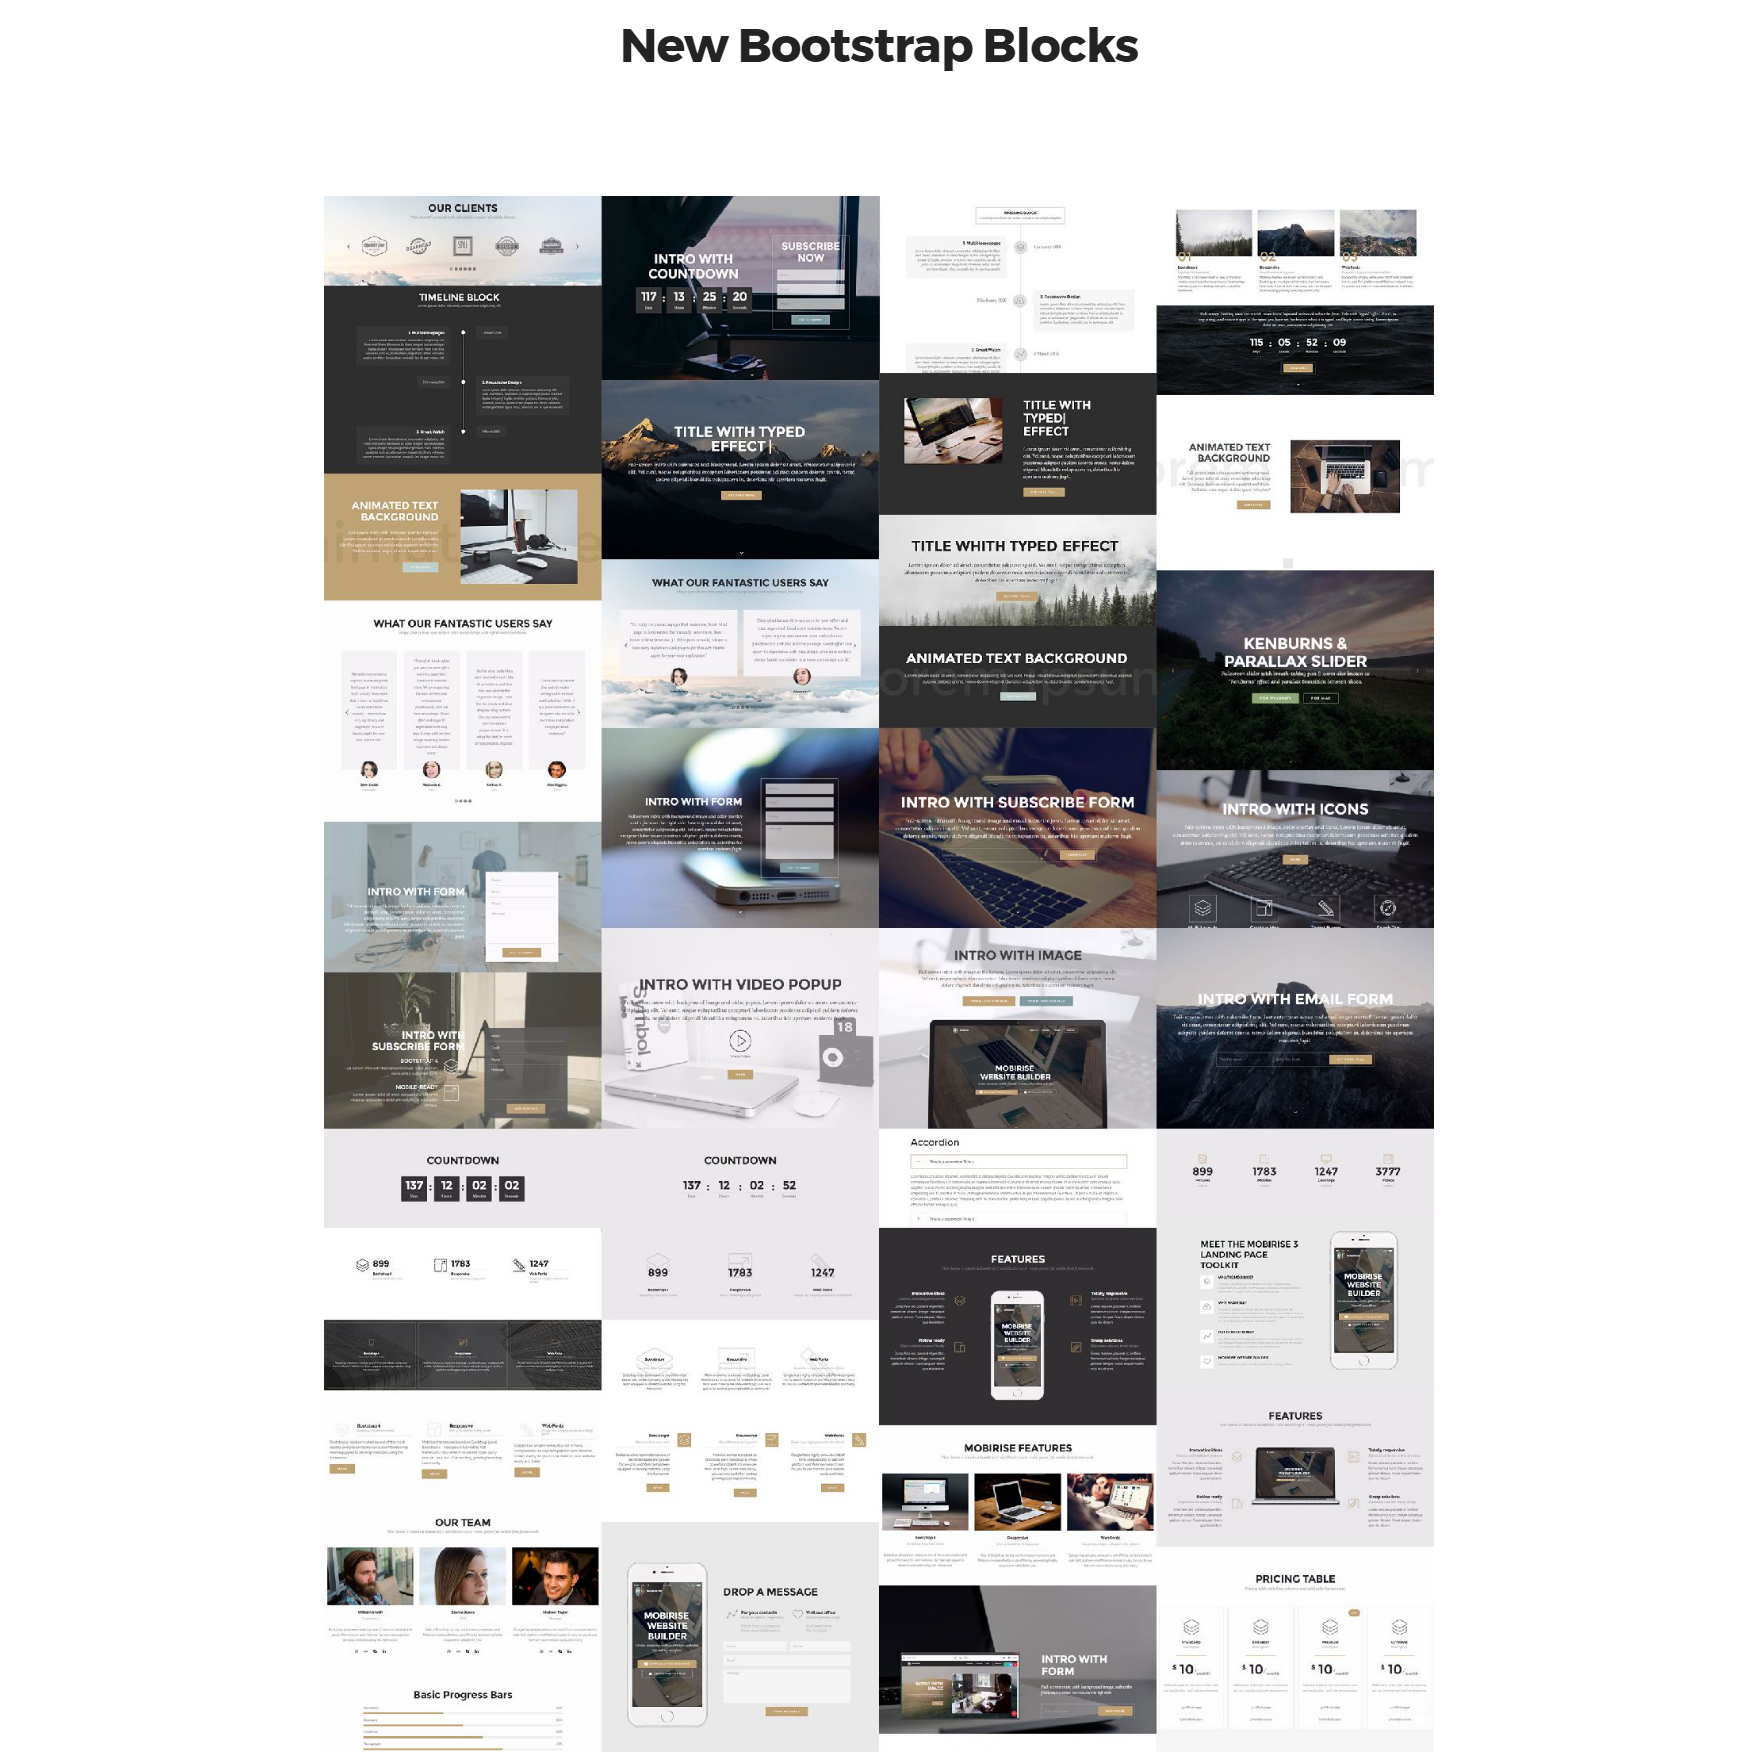 Free New Bootstrap Templates